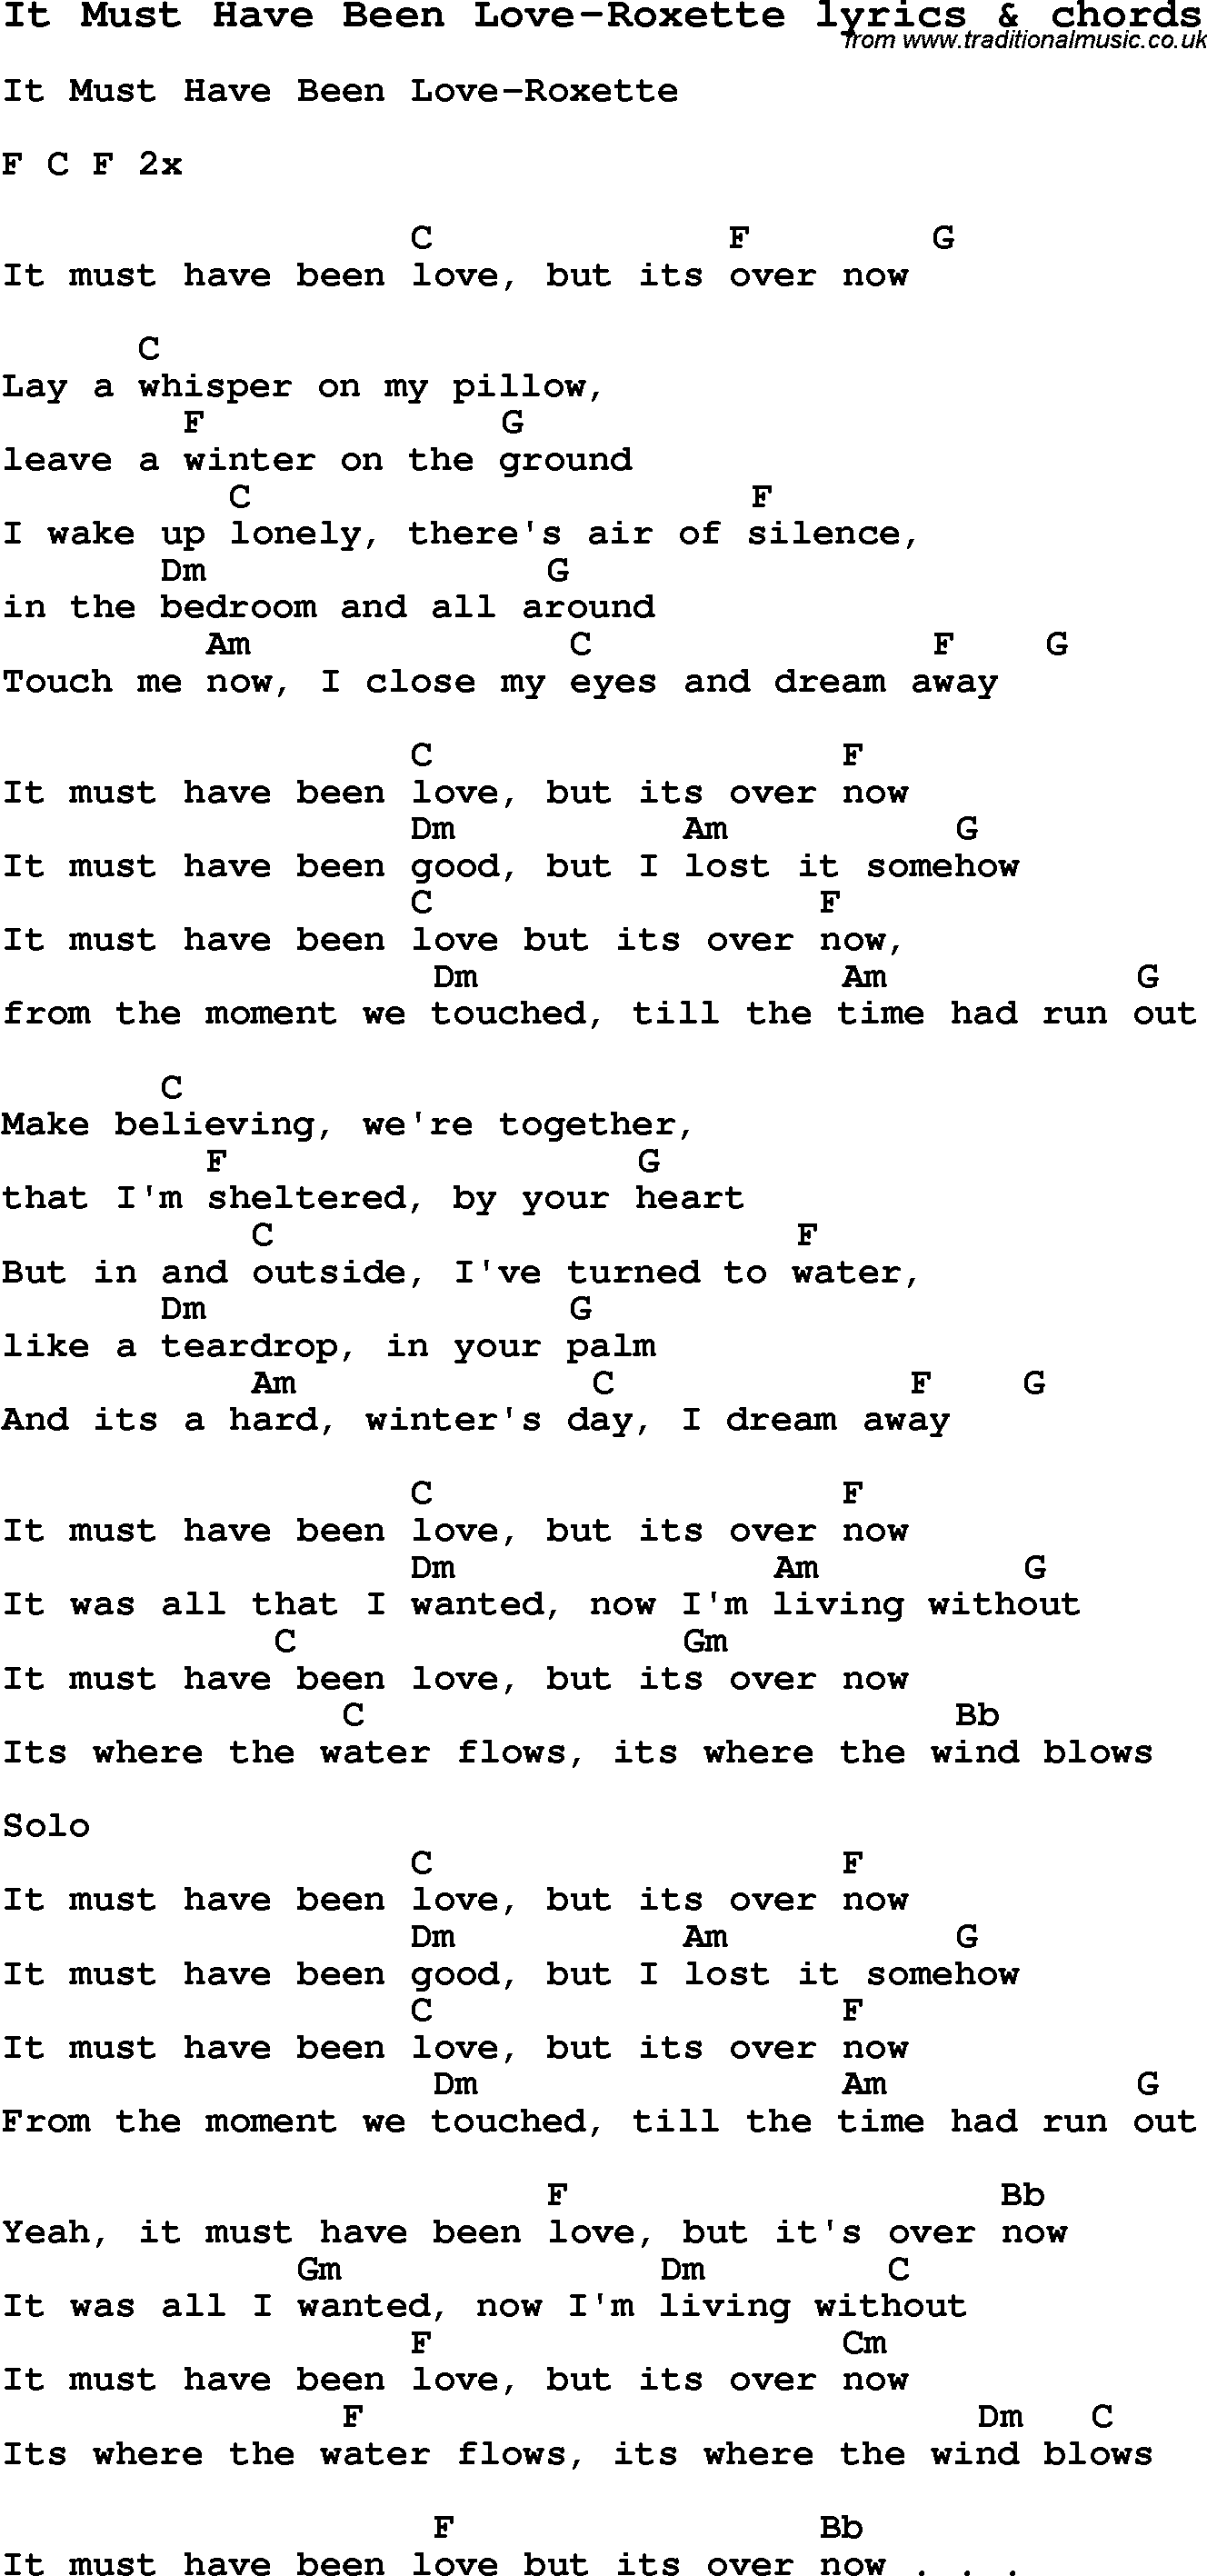 Love song lyrics for it must have been love roxette with chords love song lyrics for it must have been love roxette with chords for ukulele hexwebz Choice Image